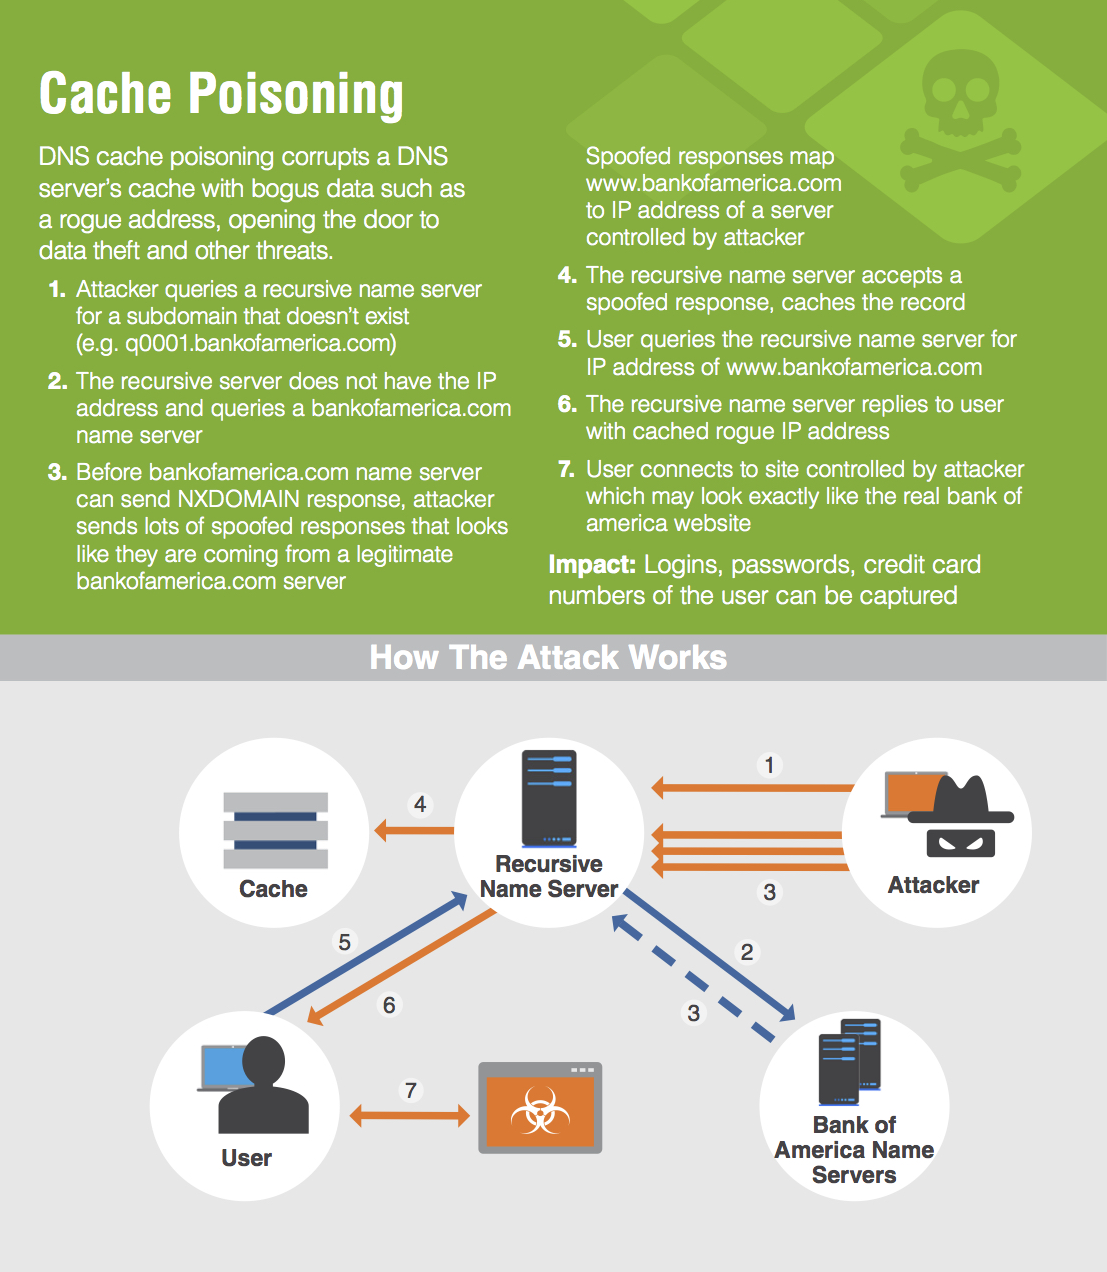 DNS cache poisoning is a cyber attack that exploits the DNS by diverting Internet traffic away from legitimate servers and towards fake ones.